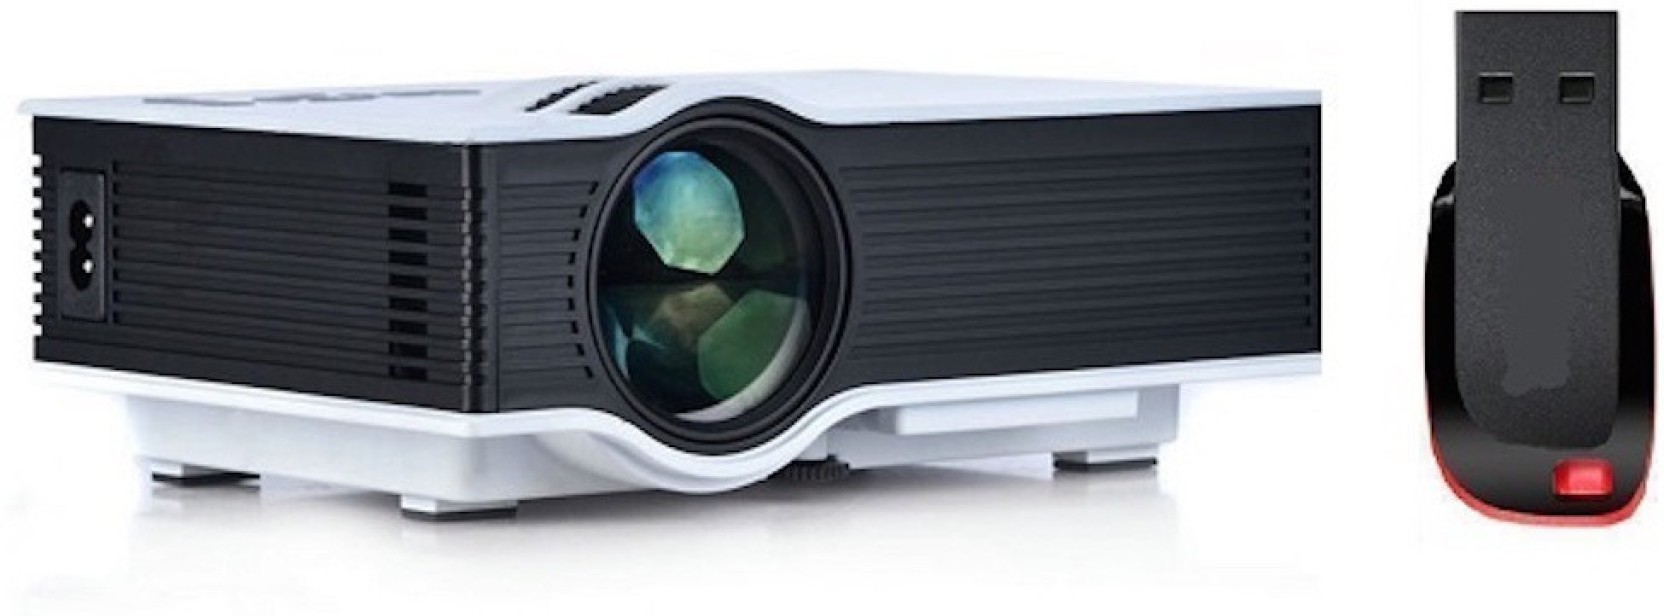 Unic Uc 40 Portable Led Projector With Pendrive 800 Lm Proyektor Uc40 Mini Corded Share